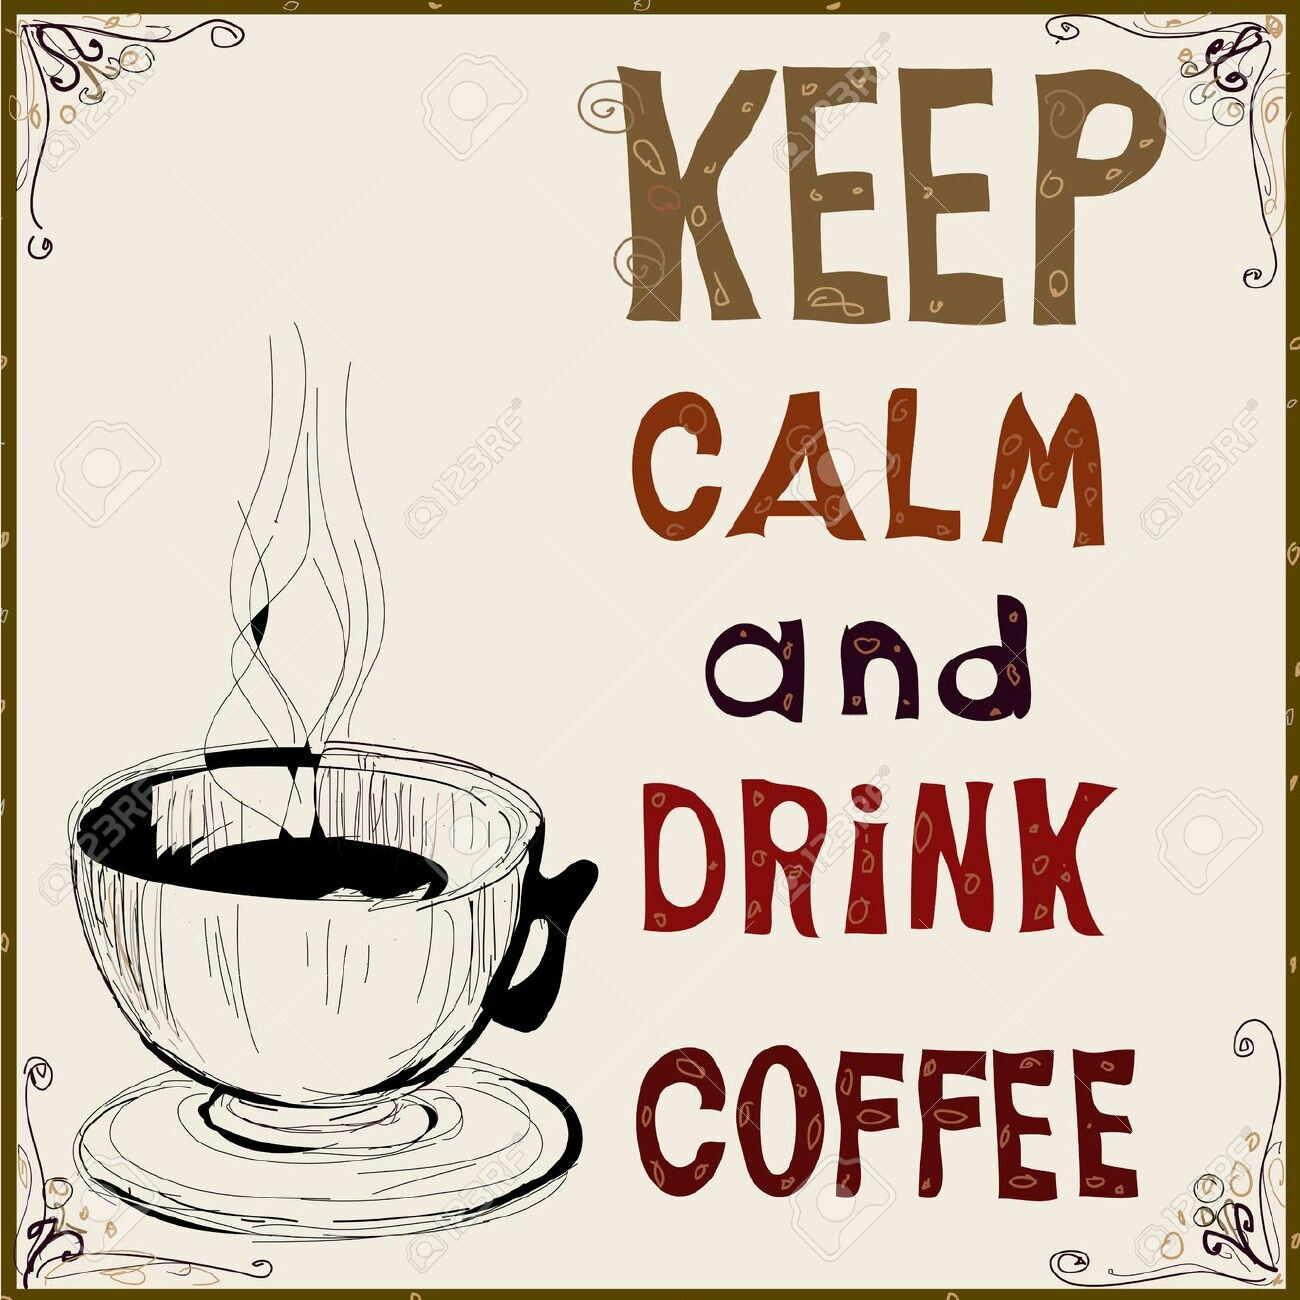 Pin By Laylajubran On صور للقهوة Coffee Keep Calm And Drink Coffee And Cigarettes Calm